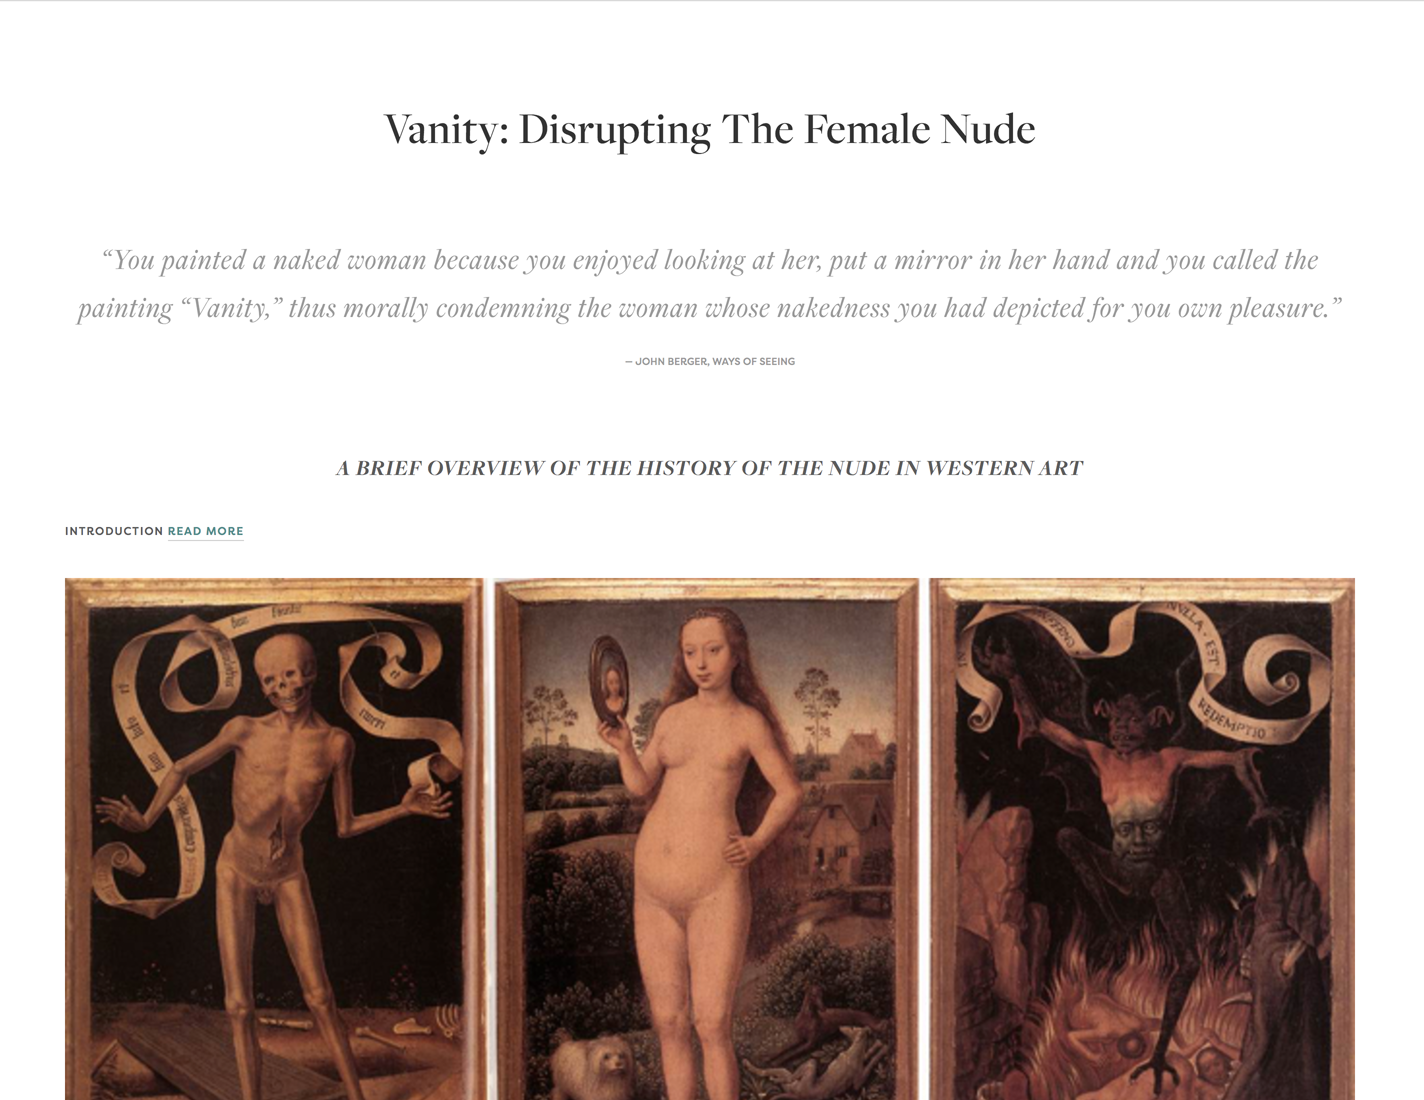 Vanity: Disrupting the Female Nude